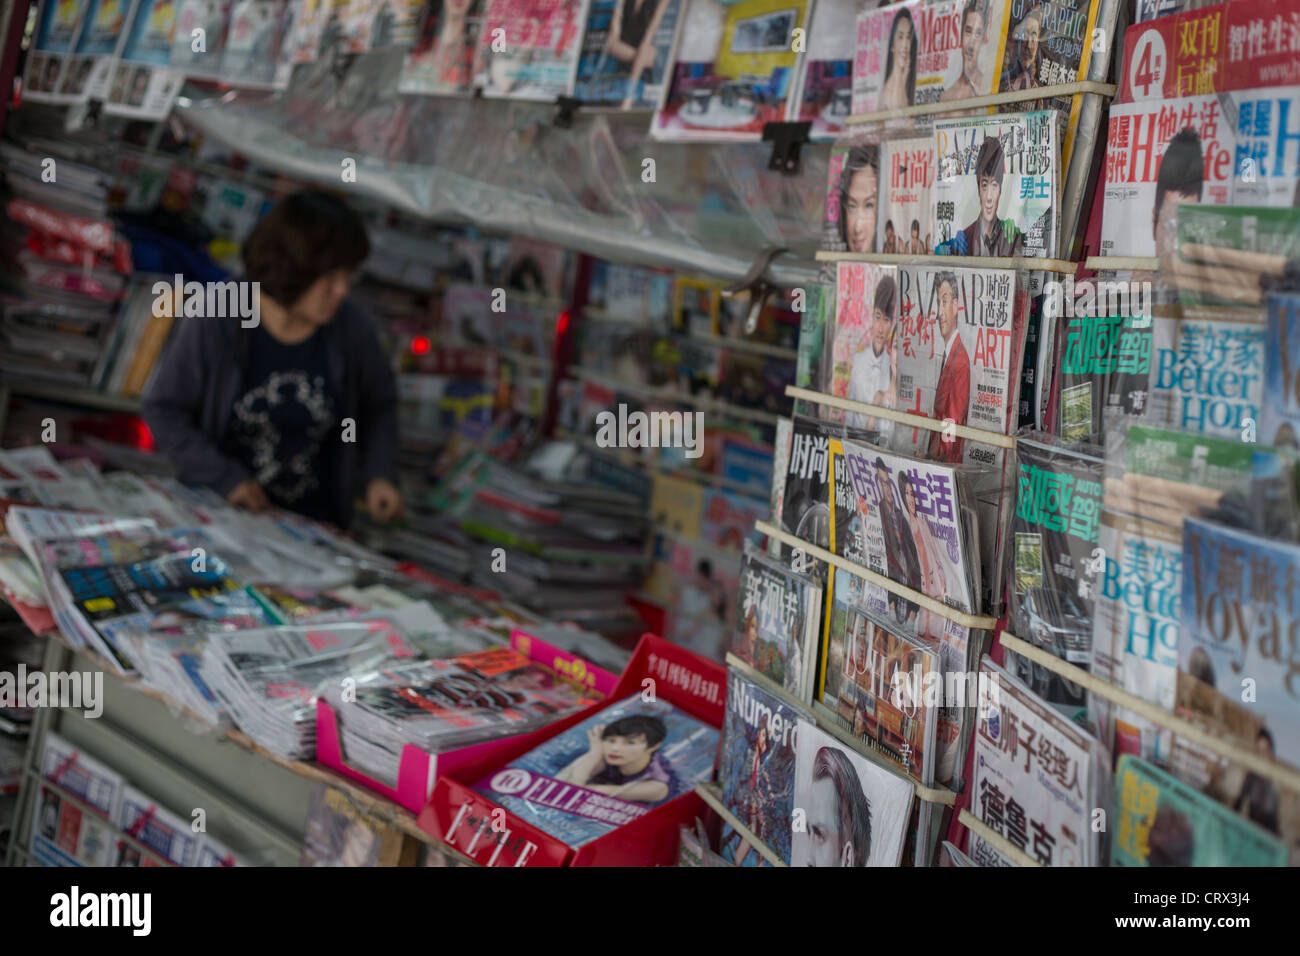 News kiosk selling newspapers and magazines, in Shanghai, China - Stock Image